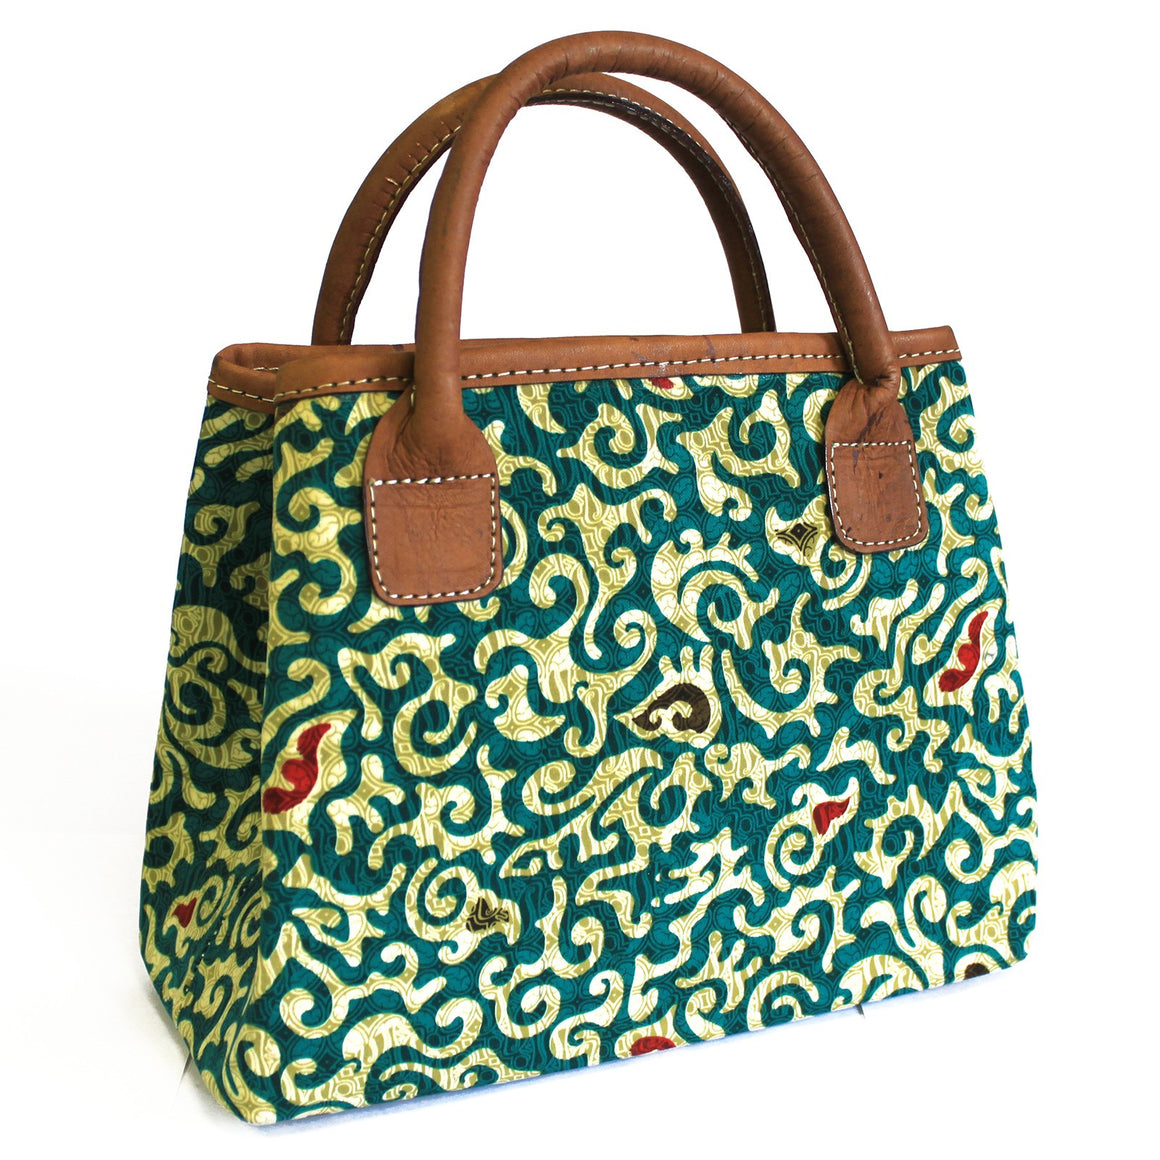 Bags, Balinese, Batik, Batik & Leather Bag, City Bag, Ethnic Bags, Executive Bag, Gift, Goatskin, India, Indian, Java, Leather, Leather & Batik Java Bags, Teal, Yogyakarta